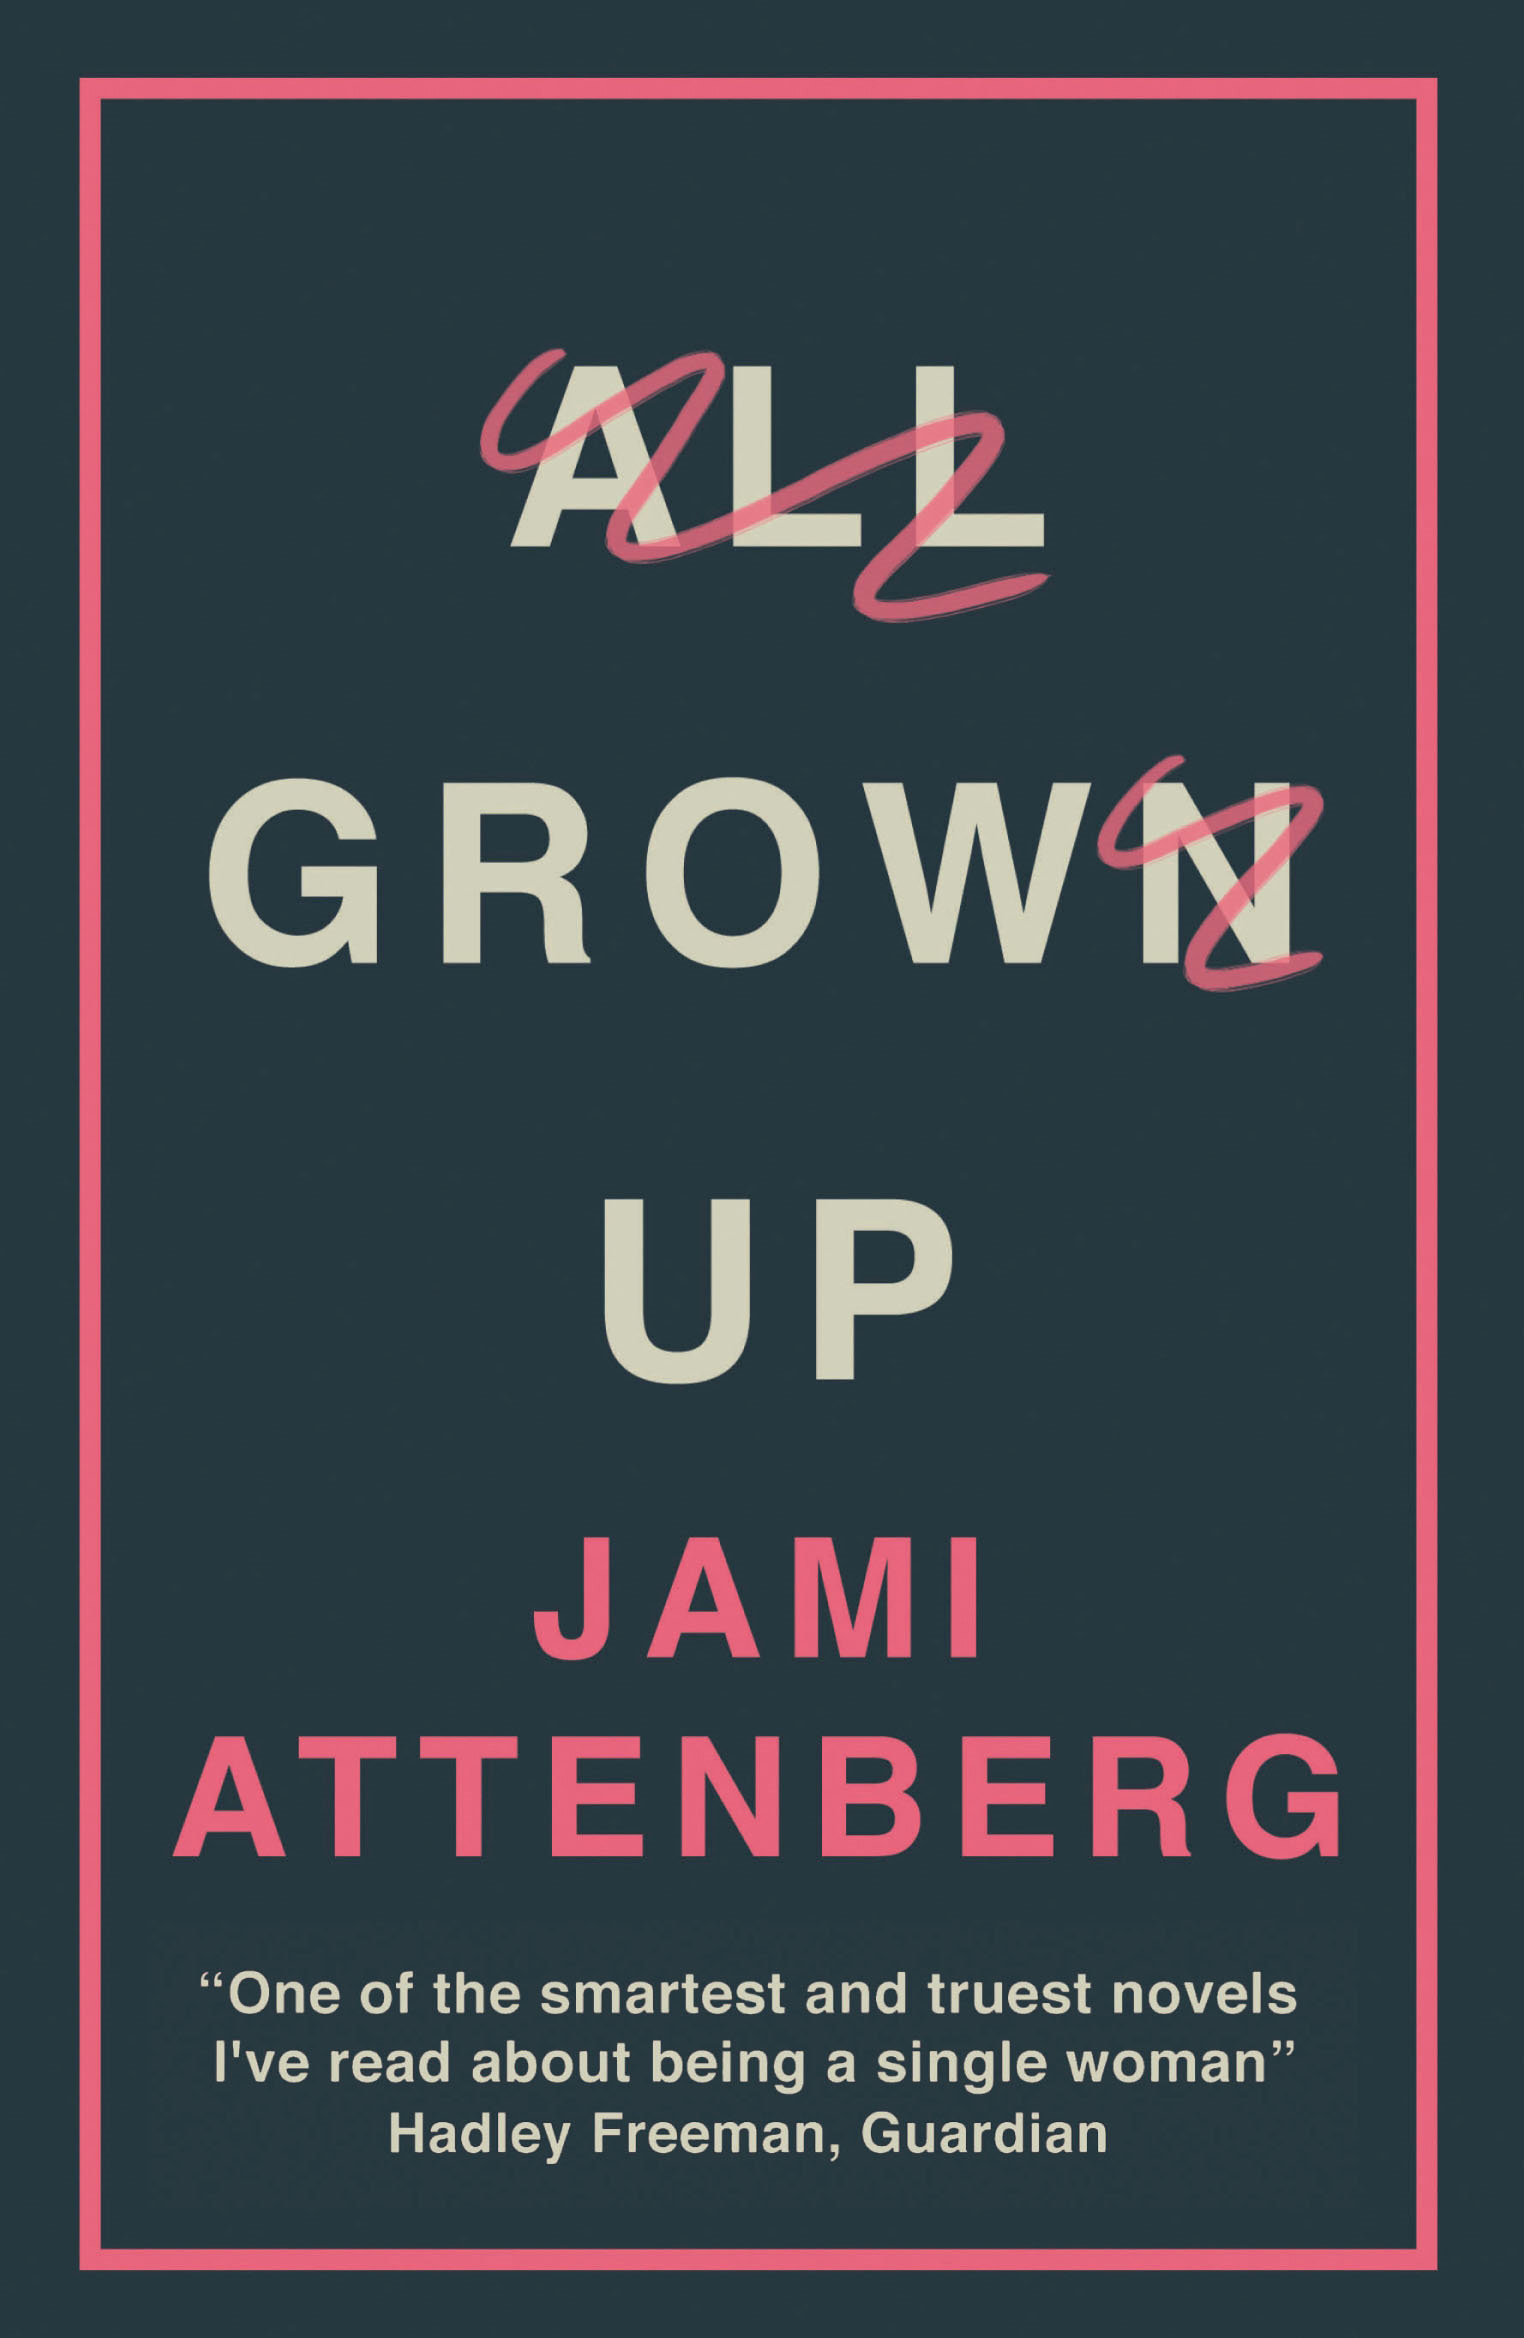 All Grown Up by Jami Attenberg, ISBN: 9781781257050